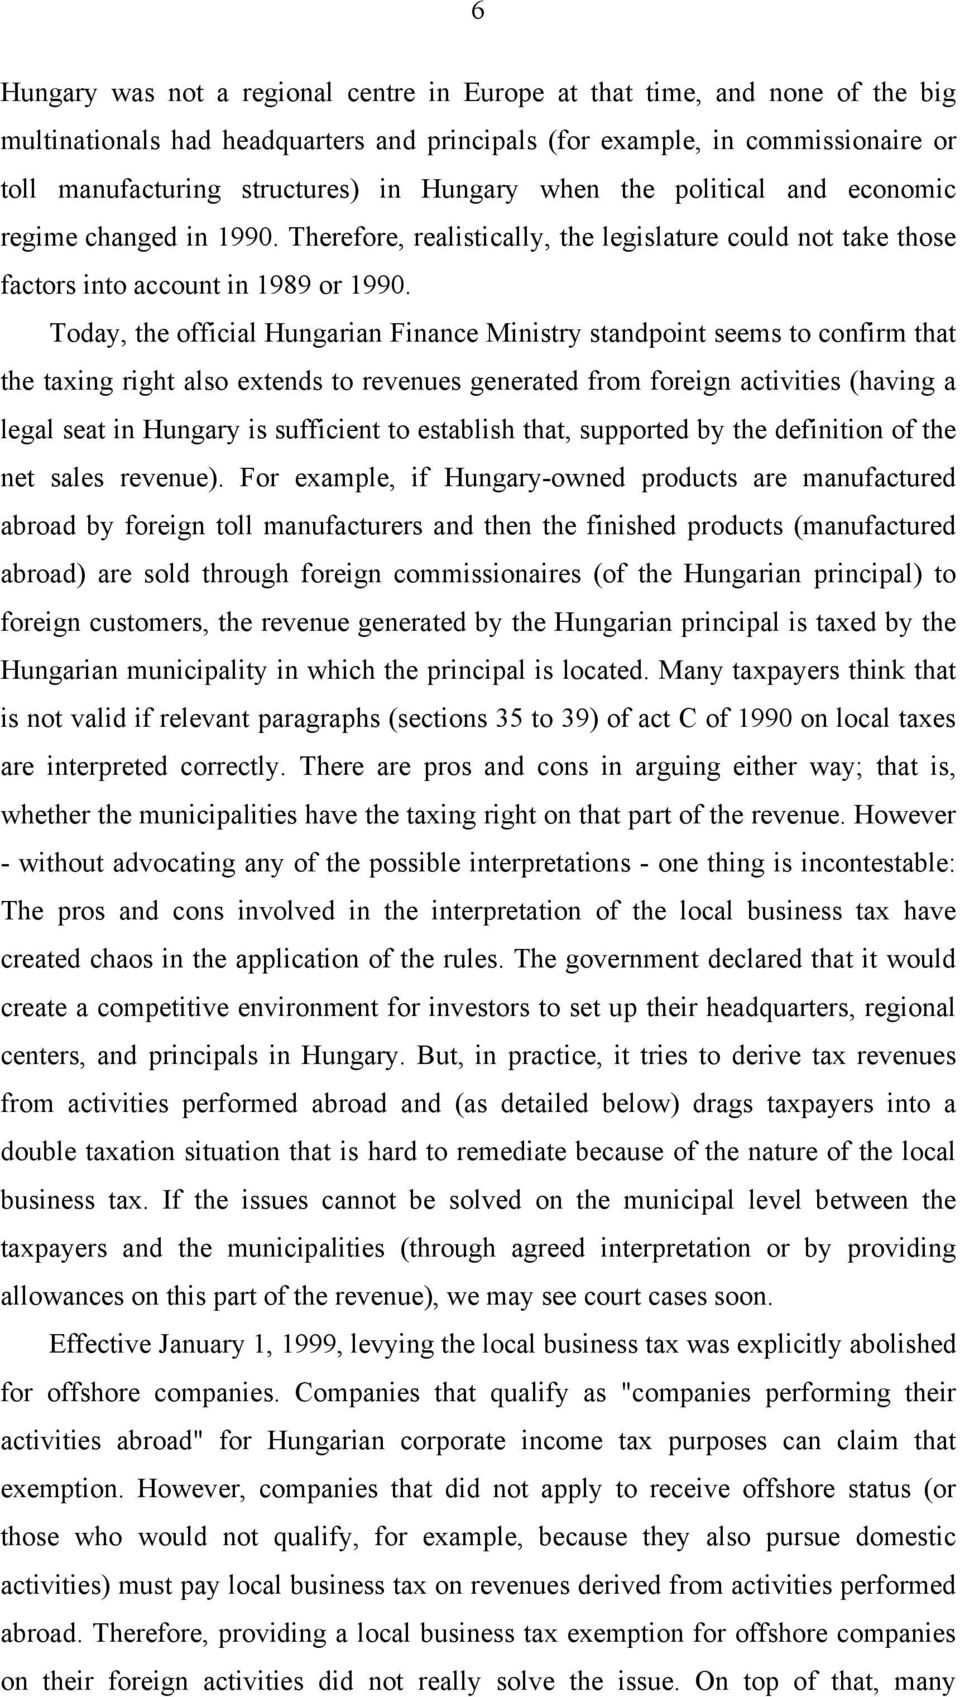 Today, the official Hungarian Finance Ministry standpoint seems to confirm that the taxing right also extends to revenues generated from foreign activities (having a legal seat in Hungary is